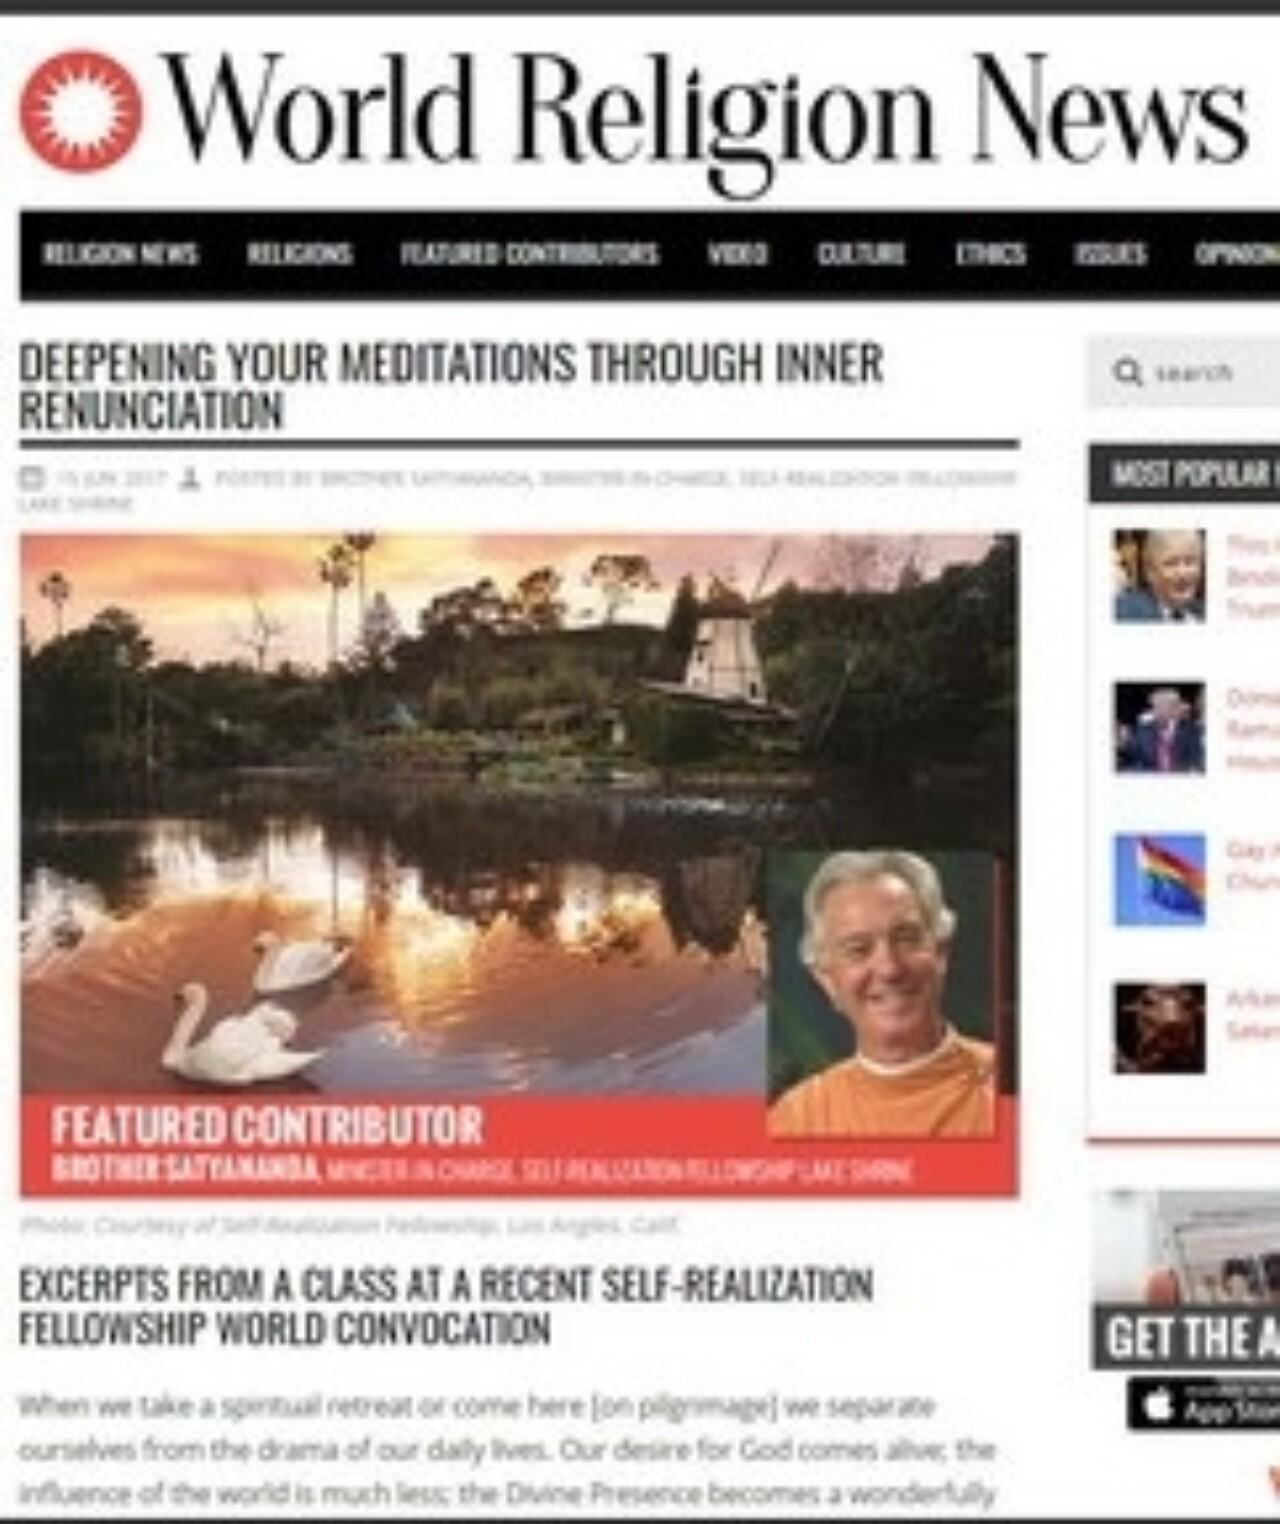 World Religion News features SRF World Convocation class presented by Brother Satyananda